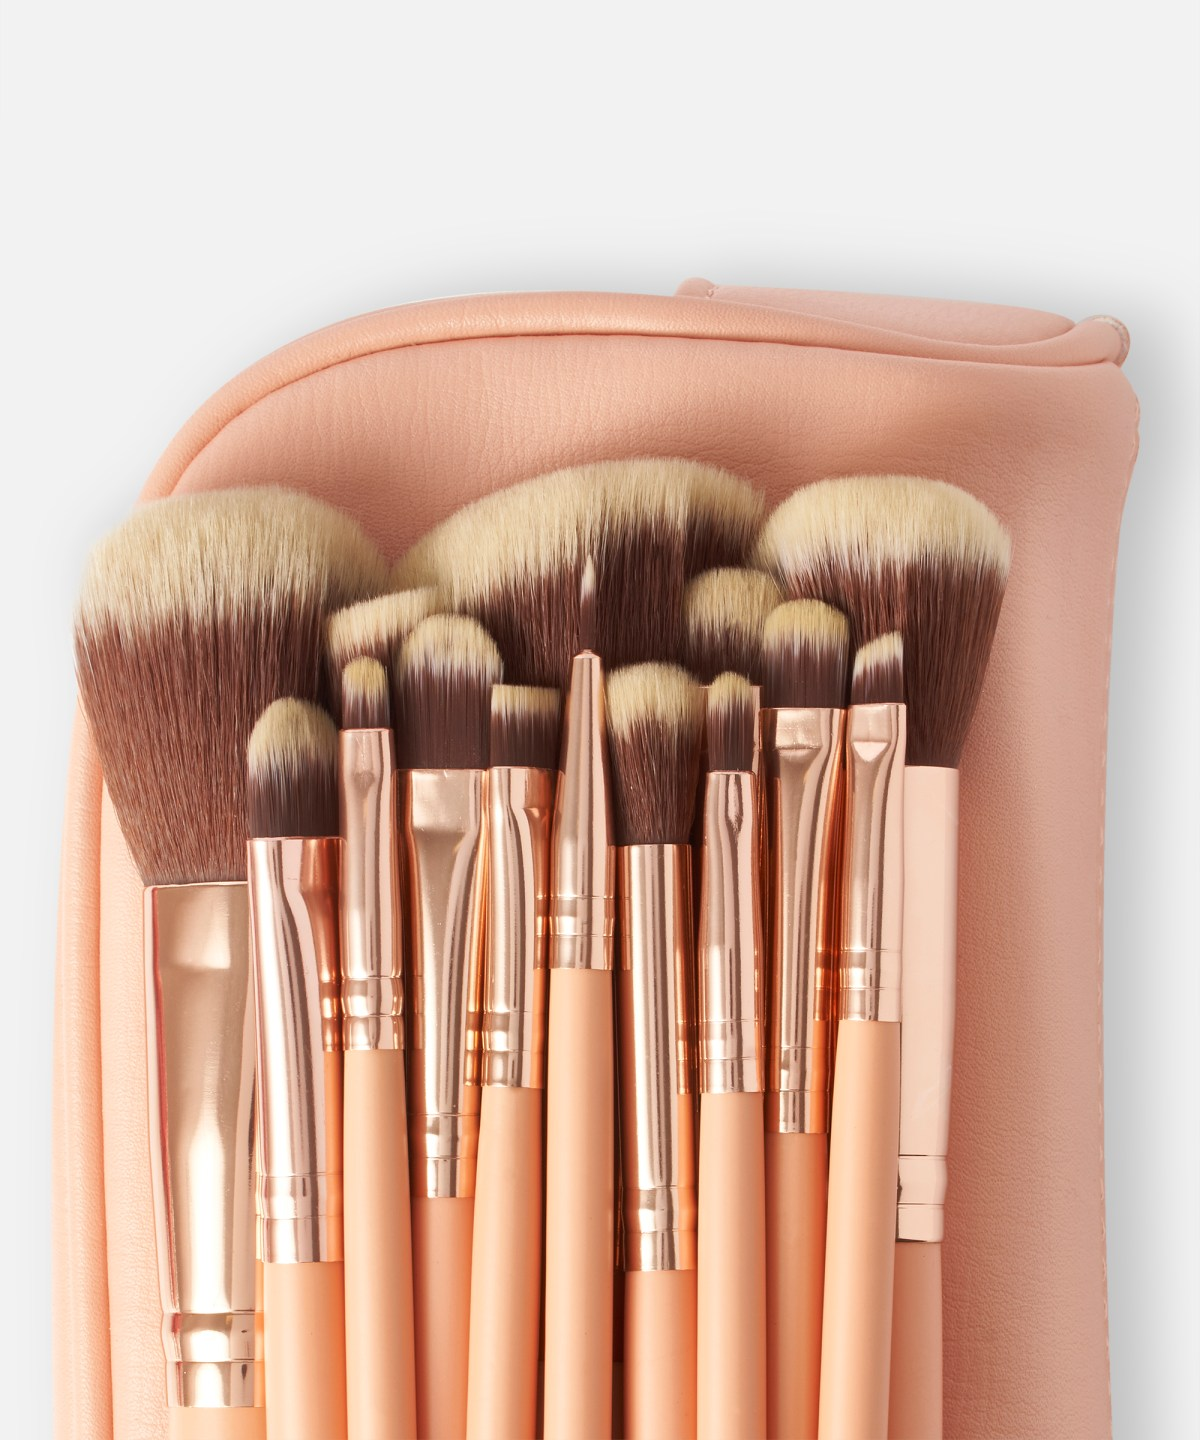 BH Cosmetics - BH Chic 14 Piece Brush Set